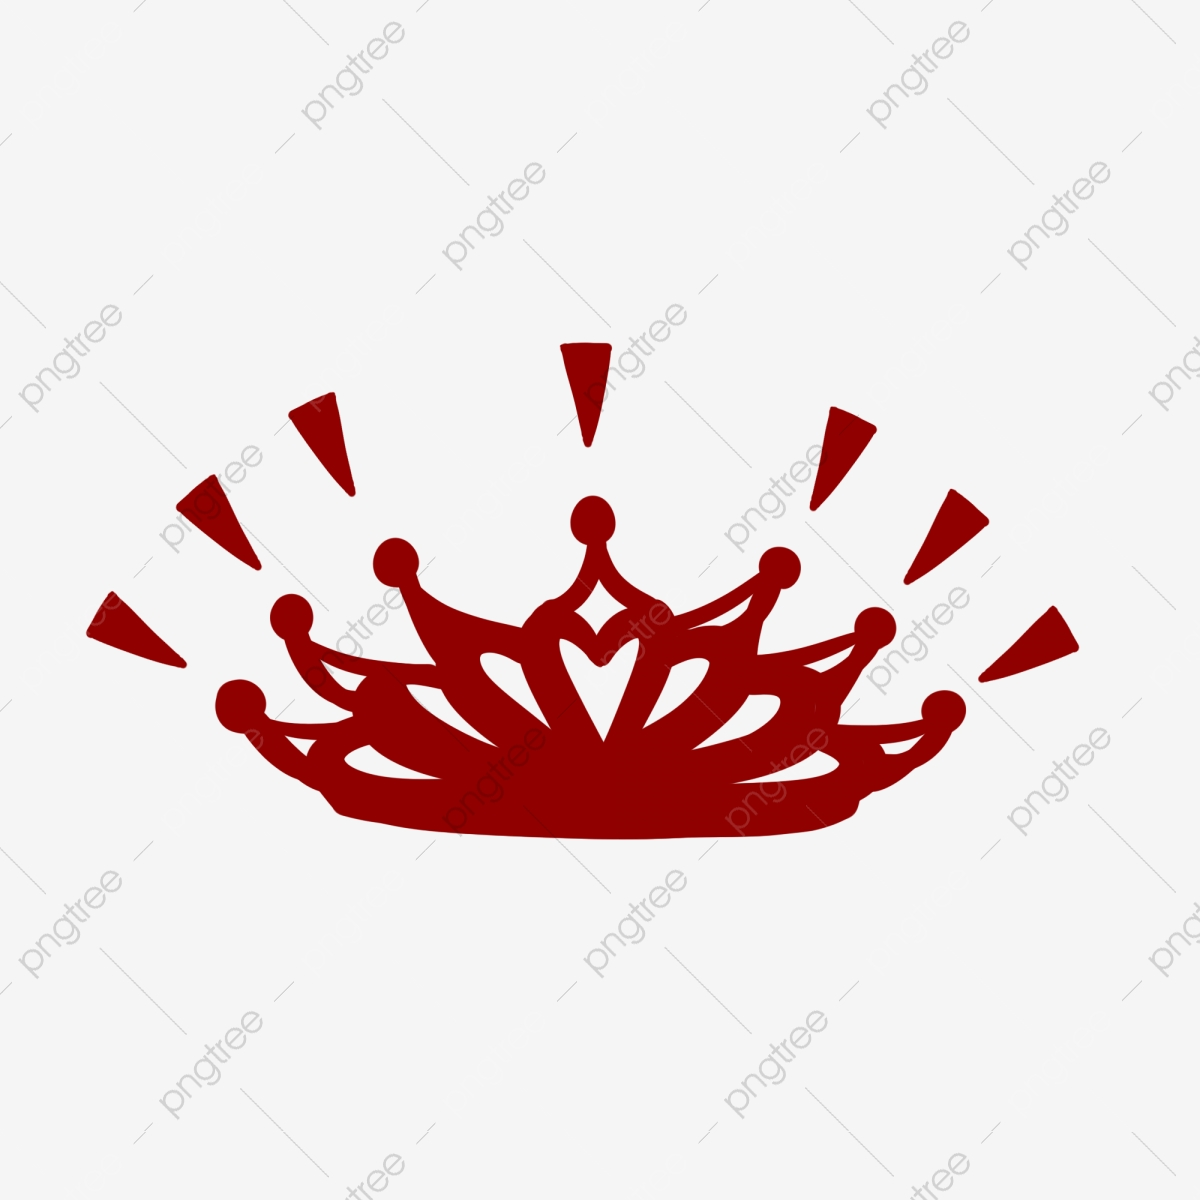 Hand Painted Cartoon Red Crown Transparent Bottom Free Hand Painted Cartoon Ray Png Transparent Clipart Image And Psd File For Free Download King cartoon crown illustration royal king red jewel royal crowns kings crown art images vector free royalty. https pngtree com freepng hand painted cartoon red crown transparent bottom free 4486488 html